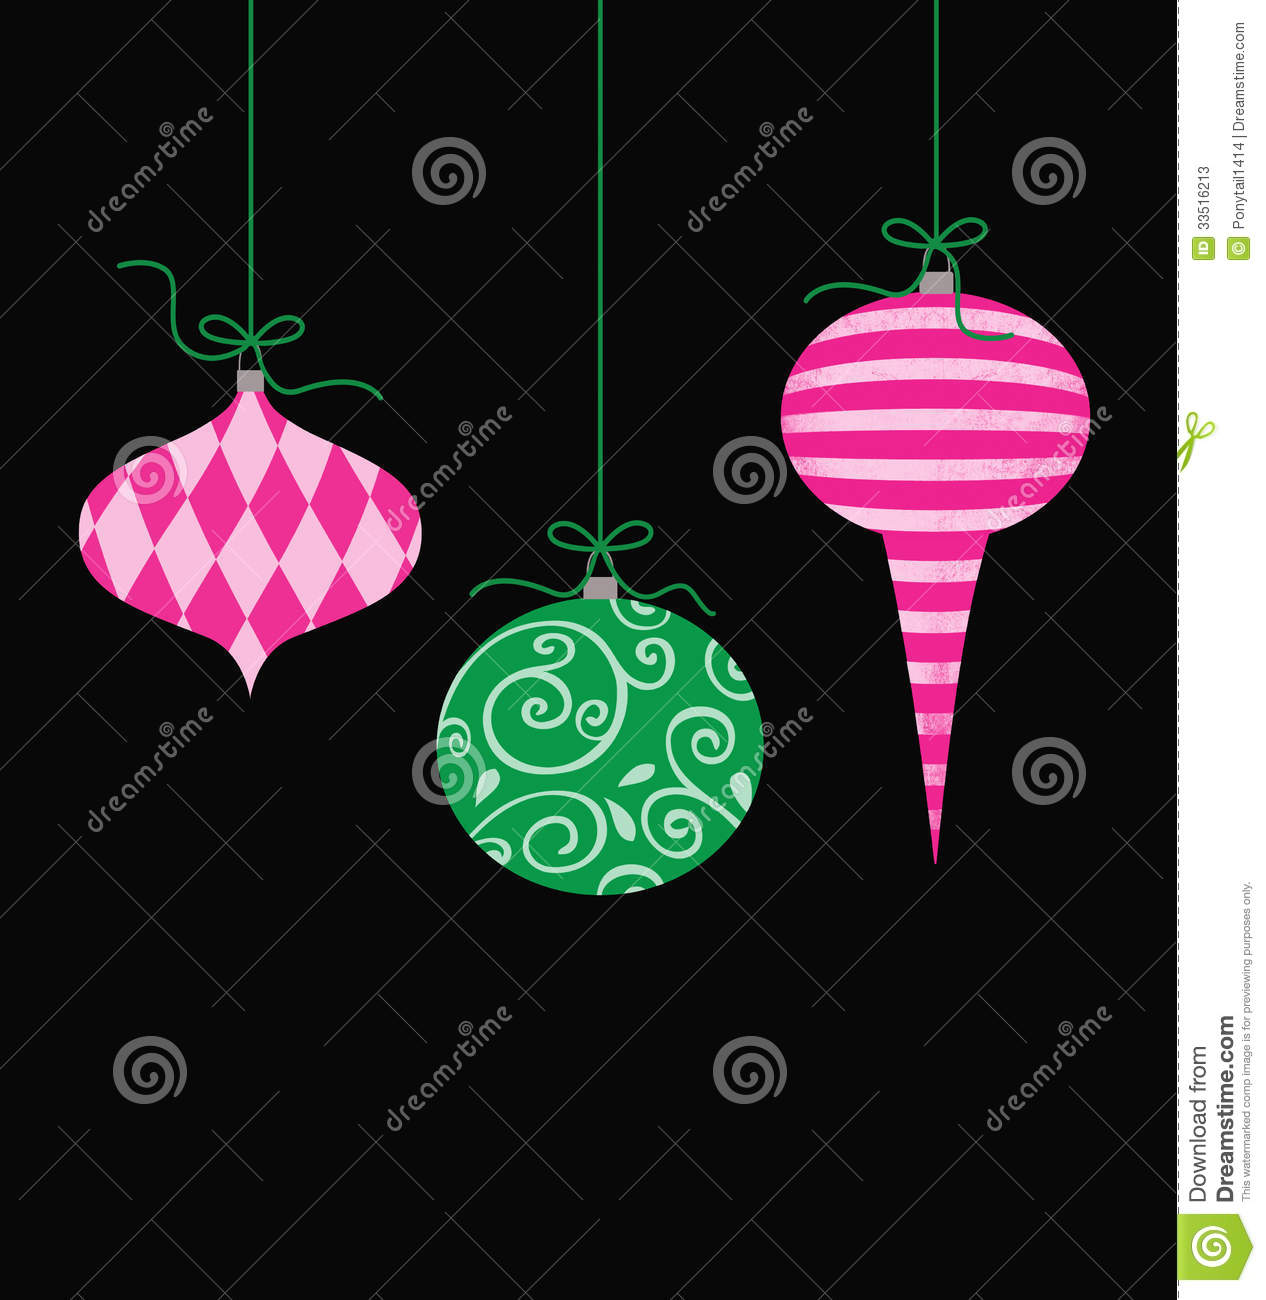 Whimsical Christmas Ornaments.Whimsical Hanging Christmas Ornaments Stock Illustration